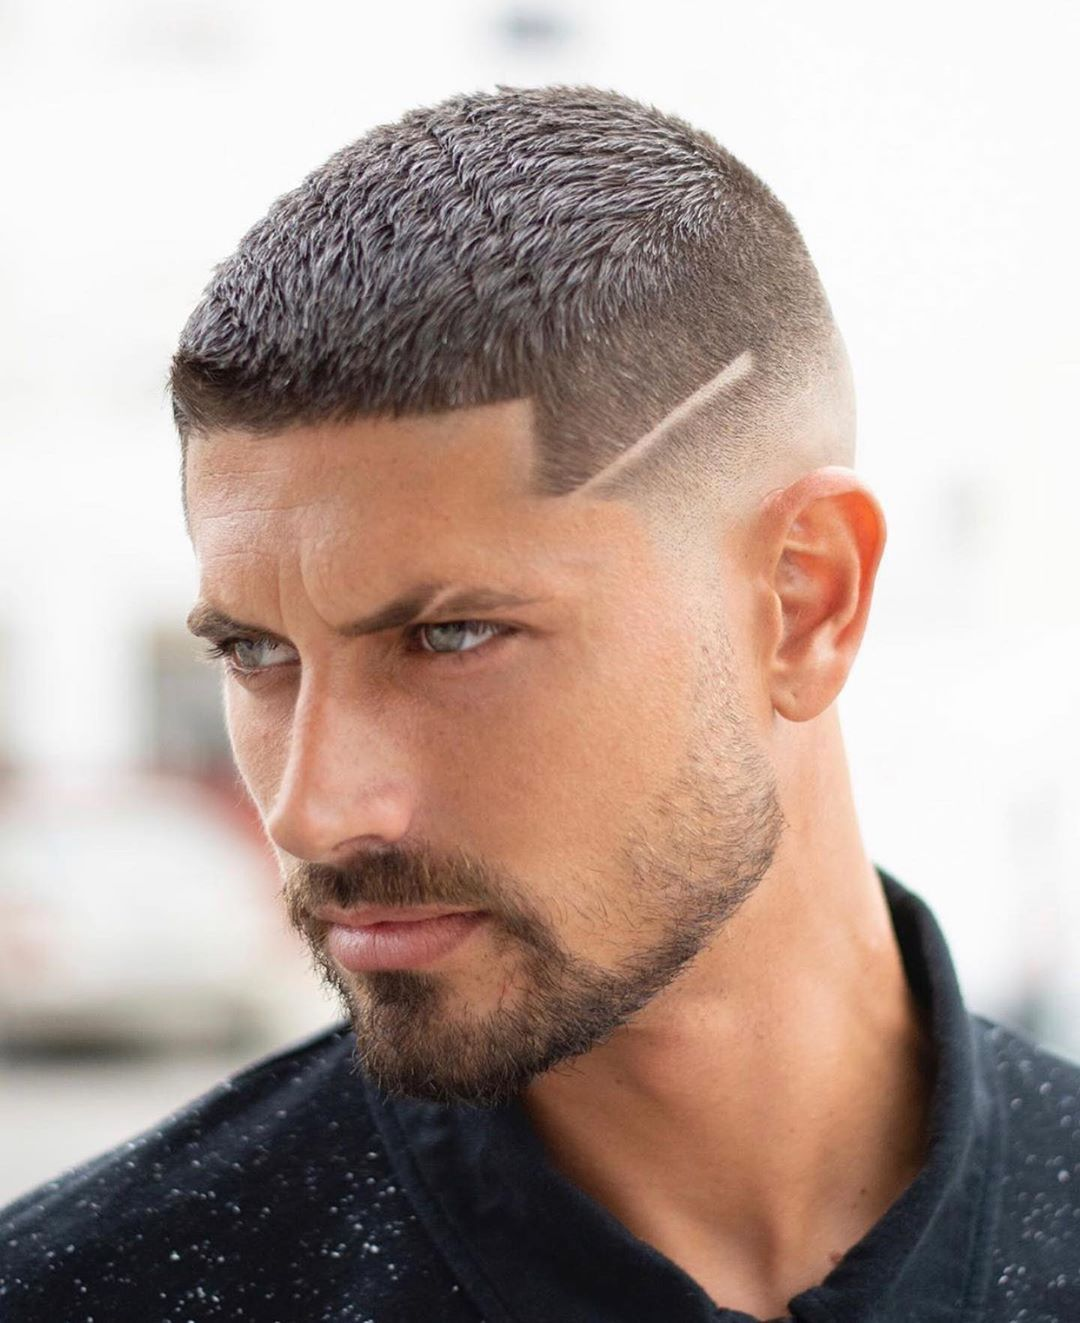 25 Very Short Hairstyles For Men 2020 Guide Mens Haircuts Short Mens Hairstyles Short Really Short Hair